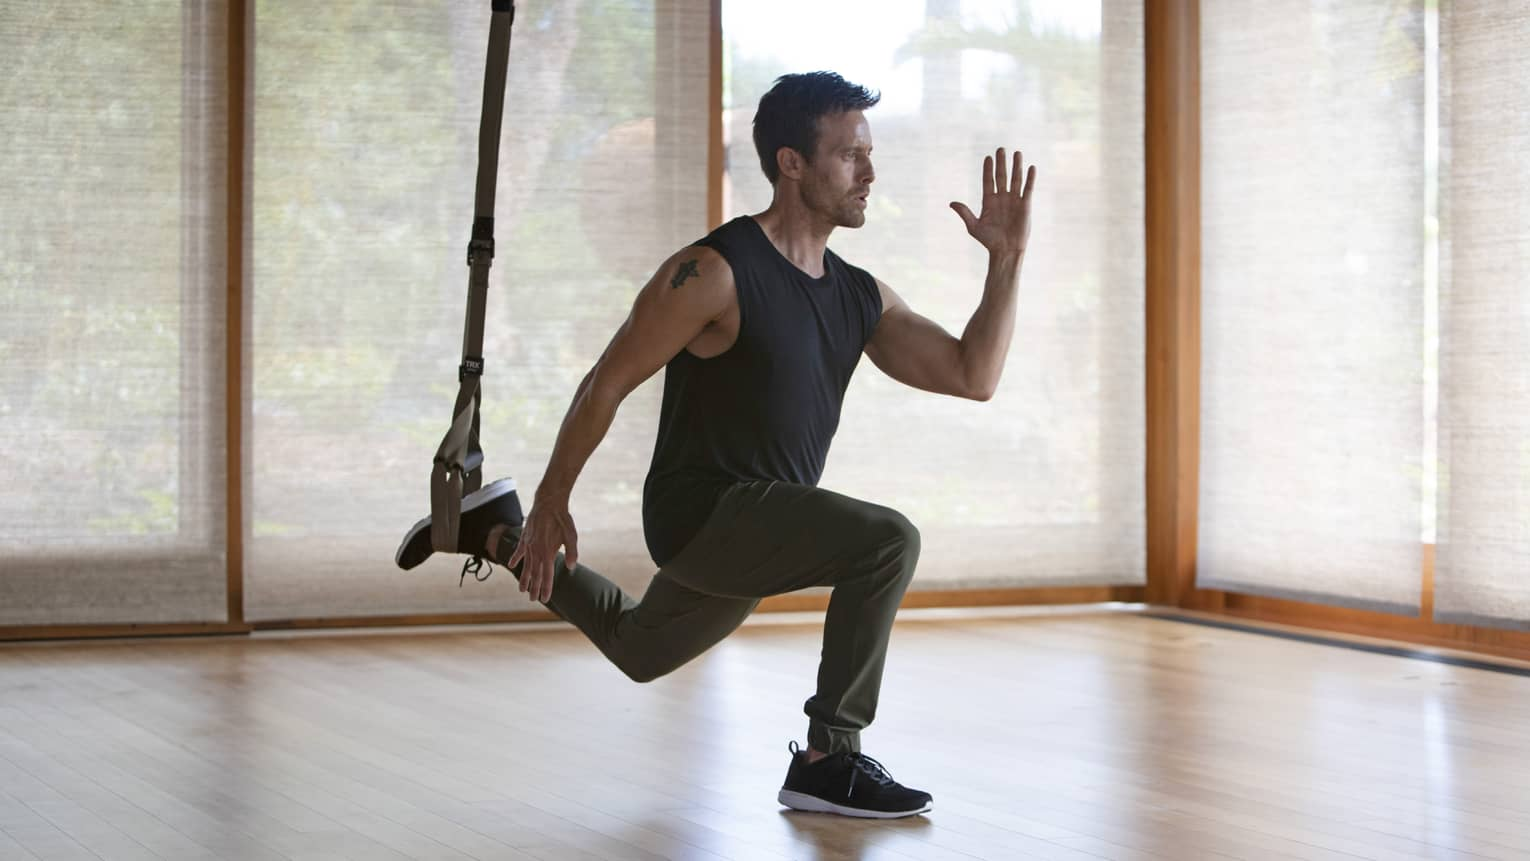 Man exercises with bungee cord in a yoga studio